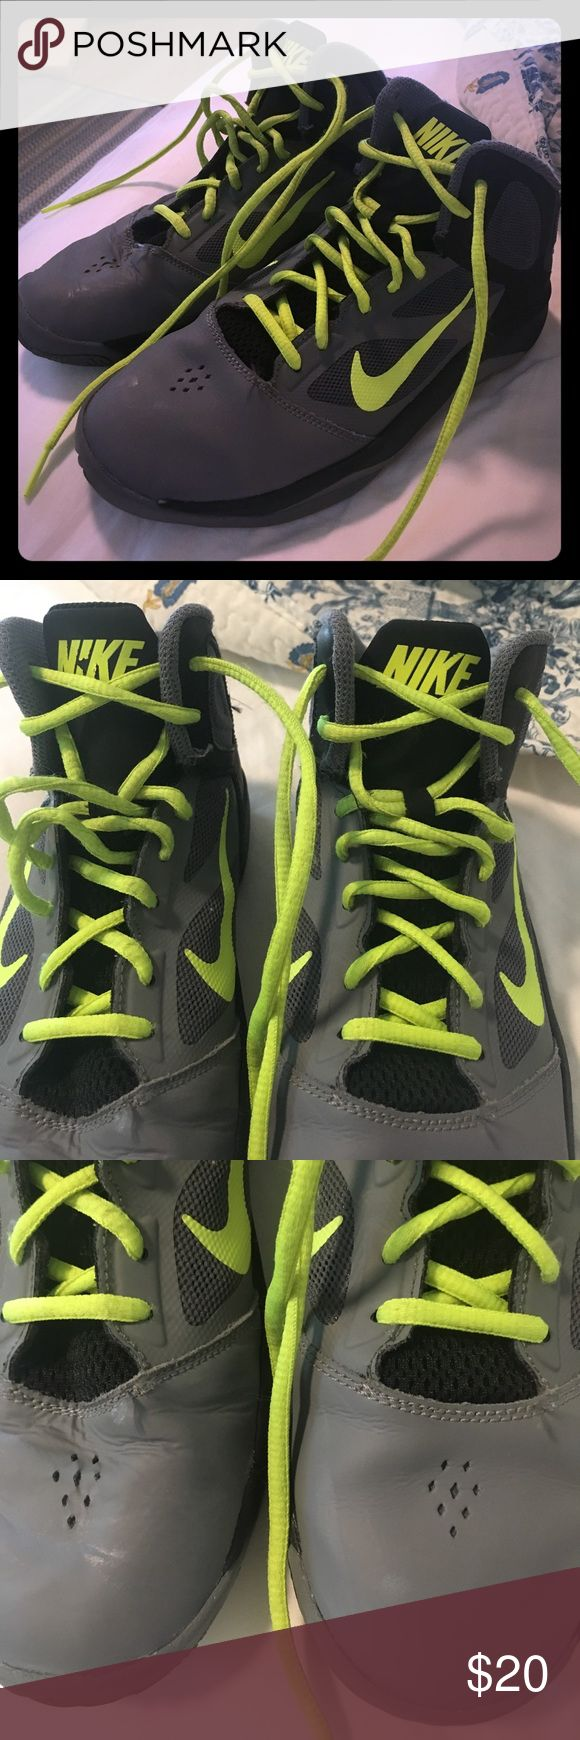 Nike Dual Fusion Basketball GrayVolt Youth Sneaker Very good condition. Some wear shown on top of shoe in picture and inner top of shoe near ankle. Considering offers. Nike Shoes Sneakers